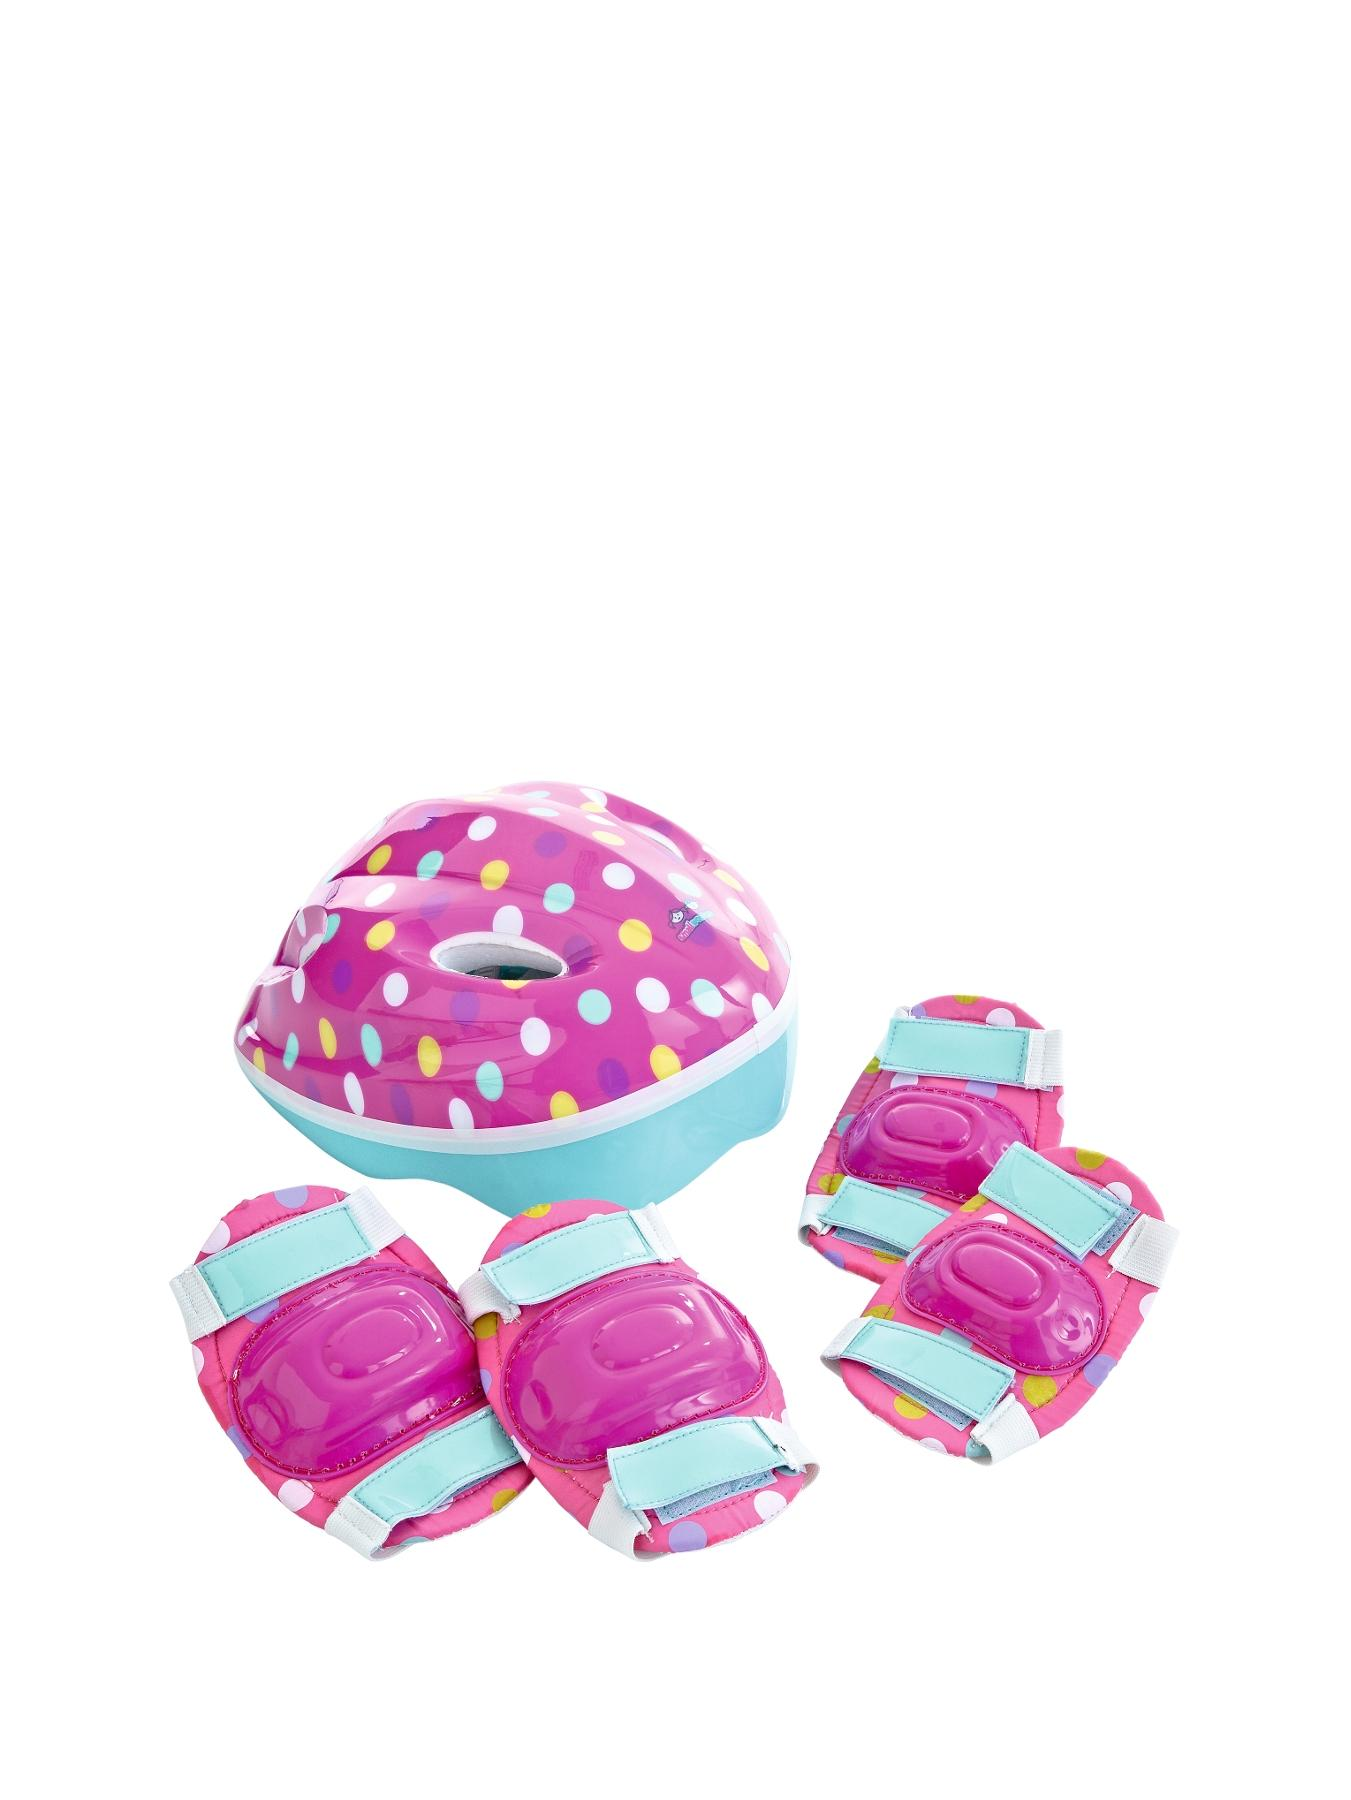 Small Wonders Safety Helmet, Knee and Elbow Pad Pack - Girls